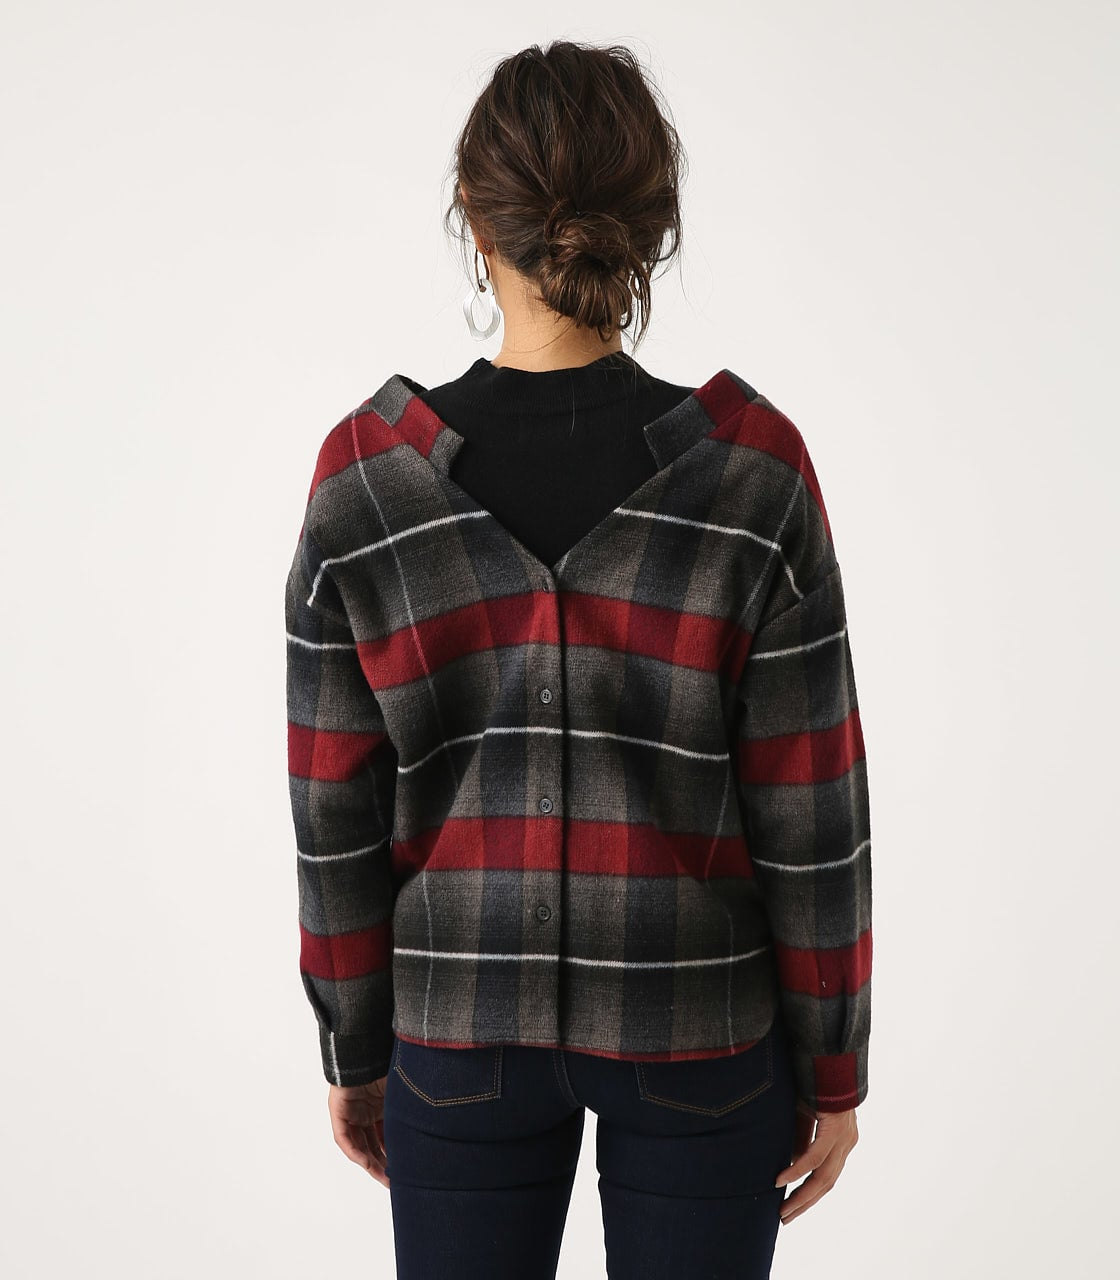 【AZUL BY MOUSSY】シャギーチェック2WAYプルオーバー 詳細画像 柄RED 7